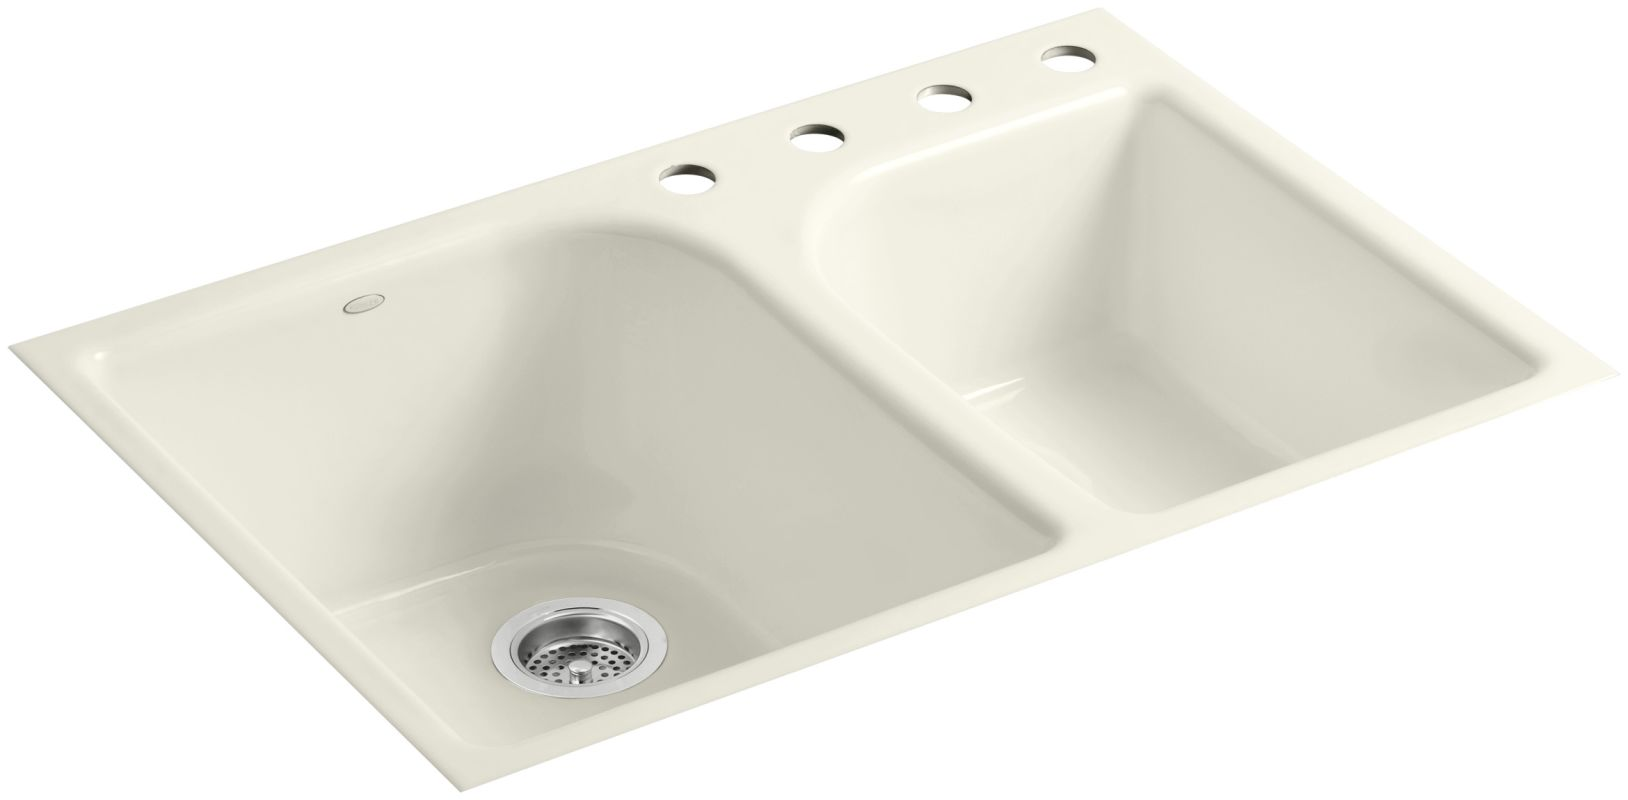 ... Kohler Executive Chef Sink Biscuit By Faucet Com K 5931 4 96 In Biscuit  By Kohler ...